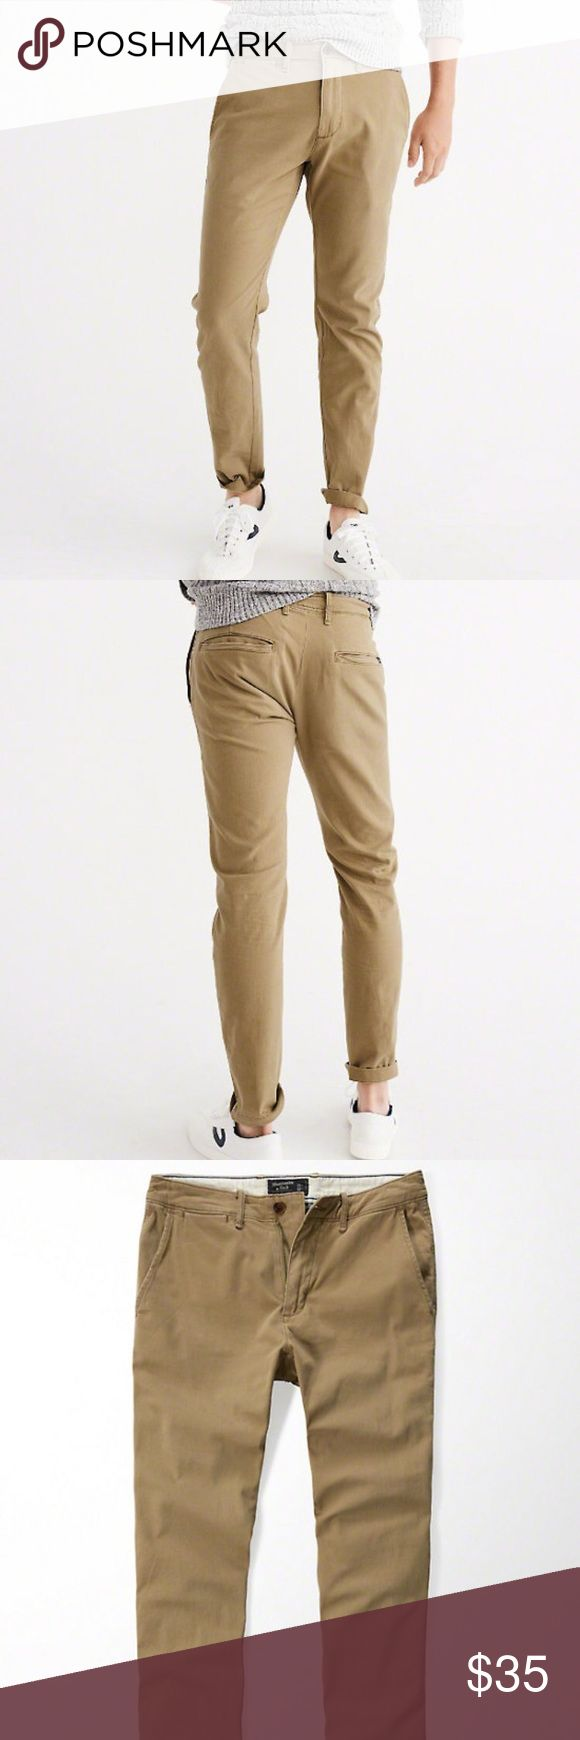 Abercrombie Fitch Men's Skinny Chino Pants 👍 Comfortable Soft and Stretch Men's Skinny Chino Pants from A&F. Very Stylish Cute Pants Must Buy!!! Waist 30 Inseam 30 Abercrombie & Fitch Pants Chinos & Khakis